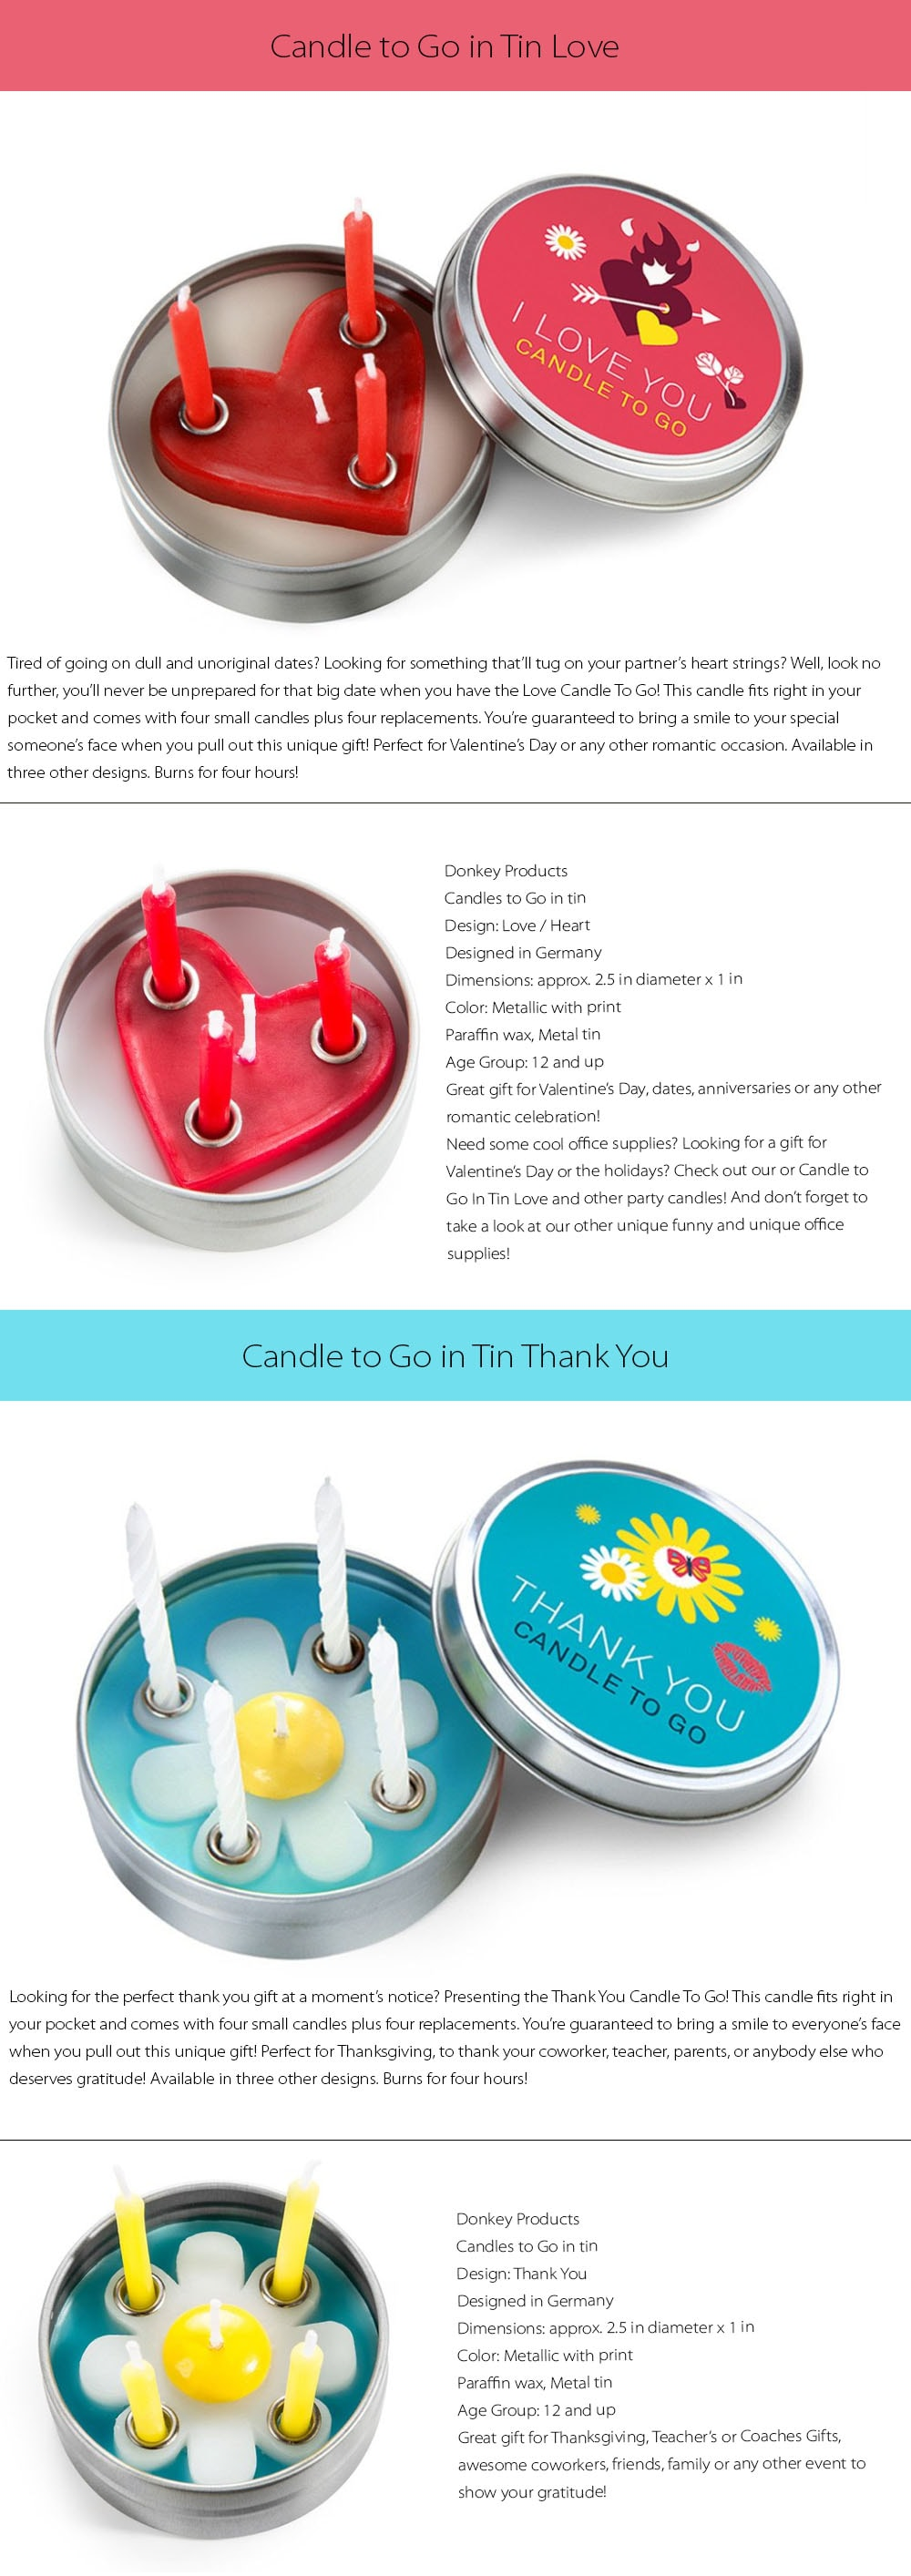 Candle to Go in Tin Designed in Germany